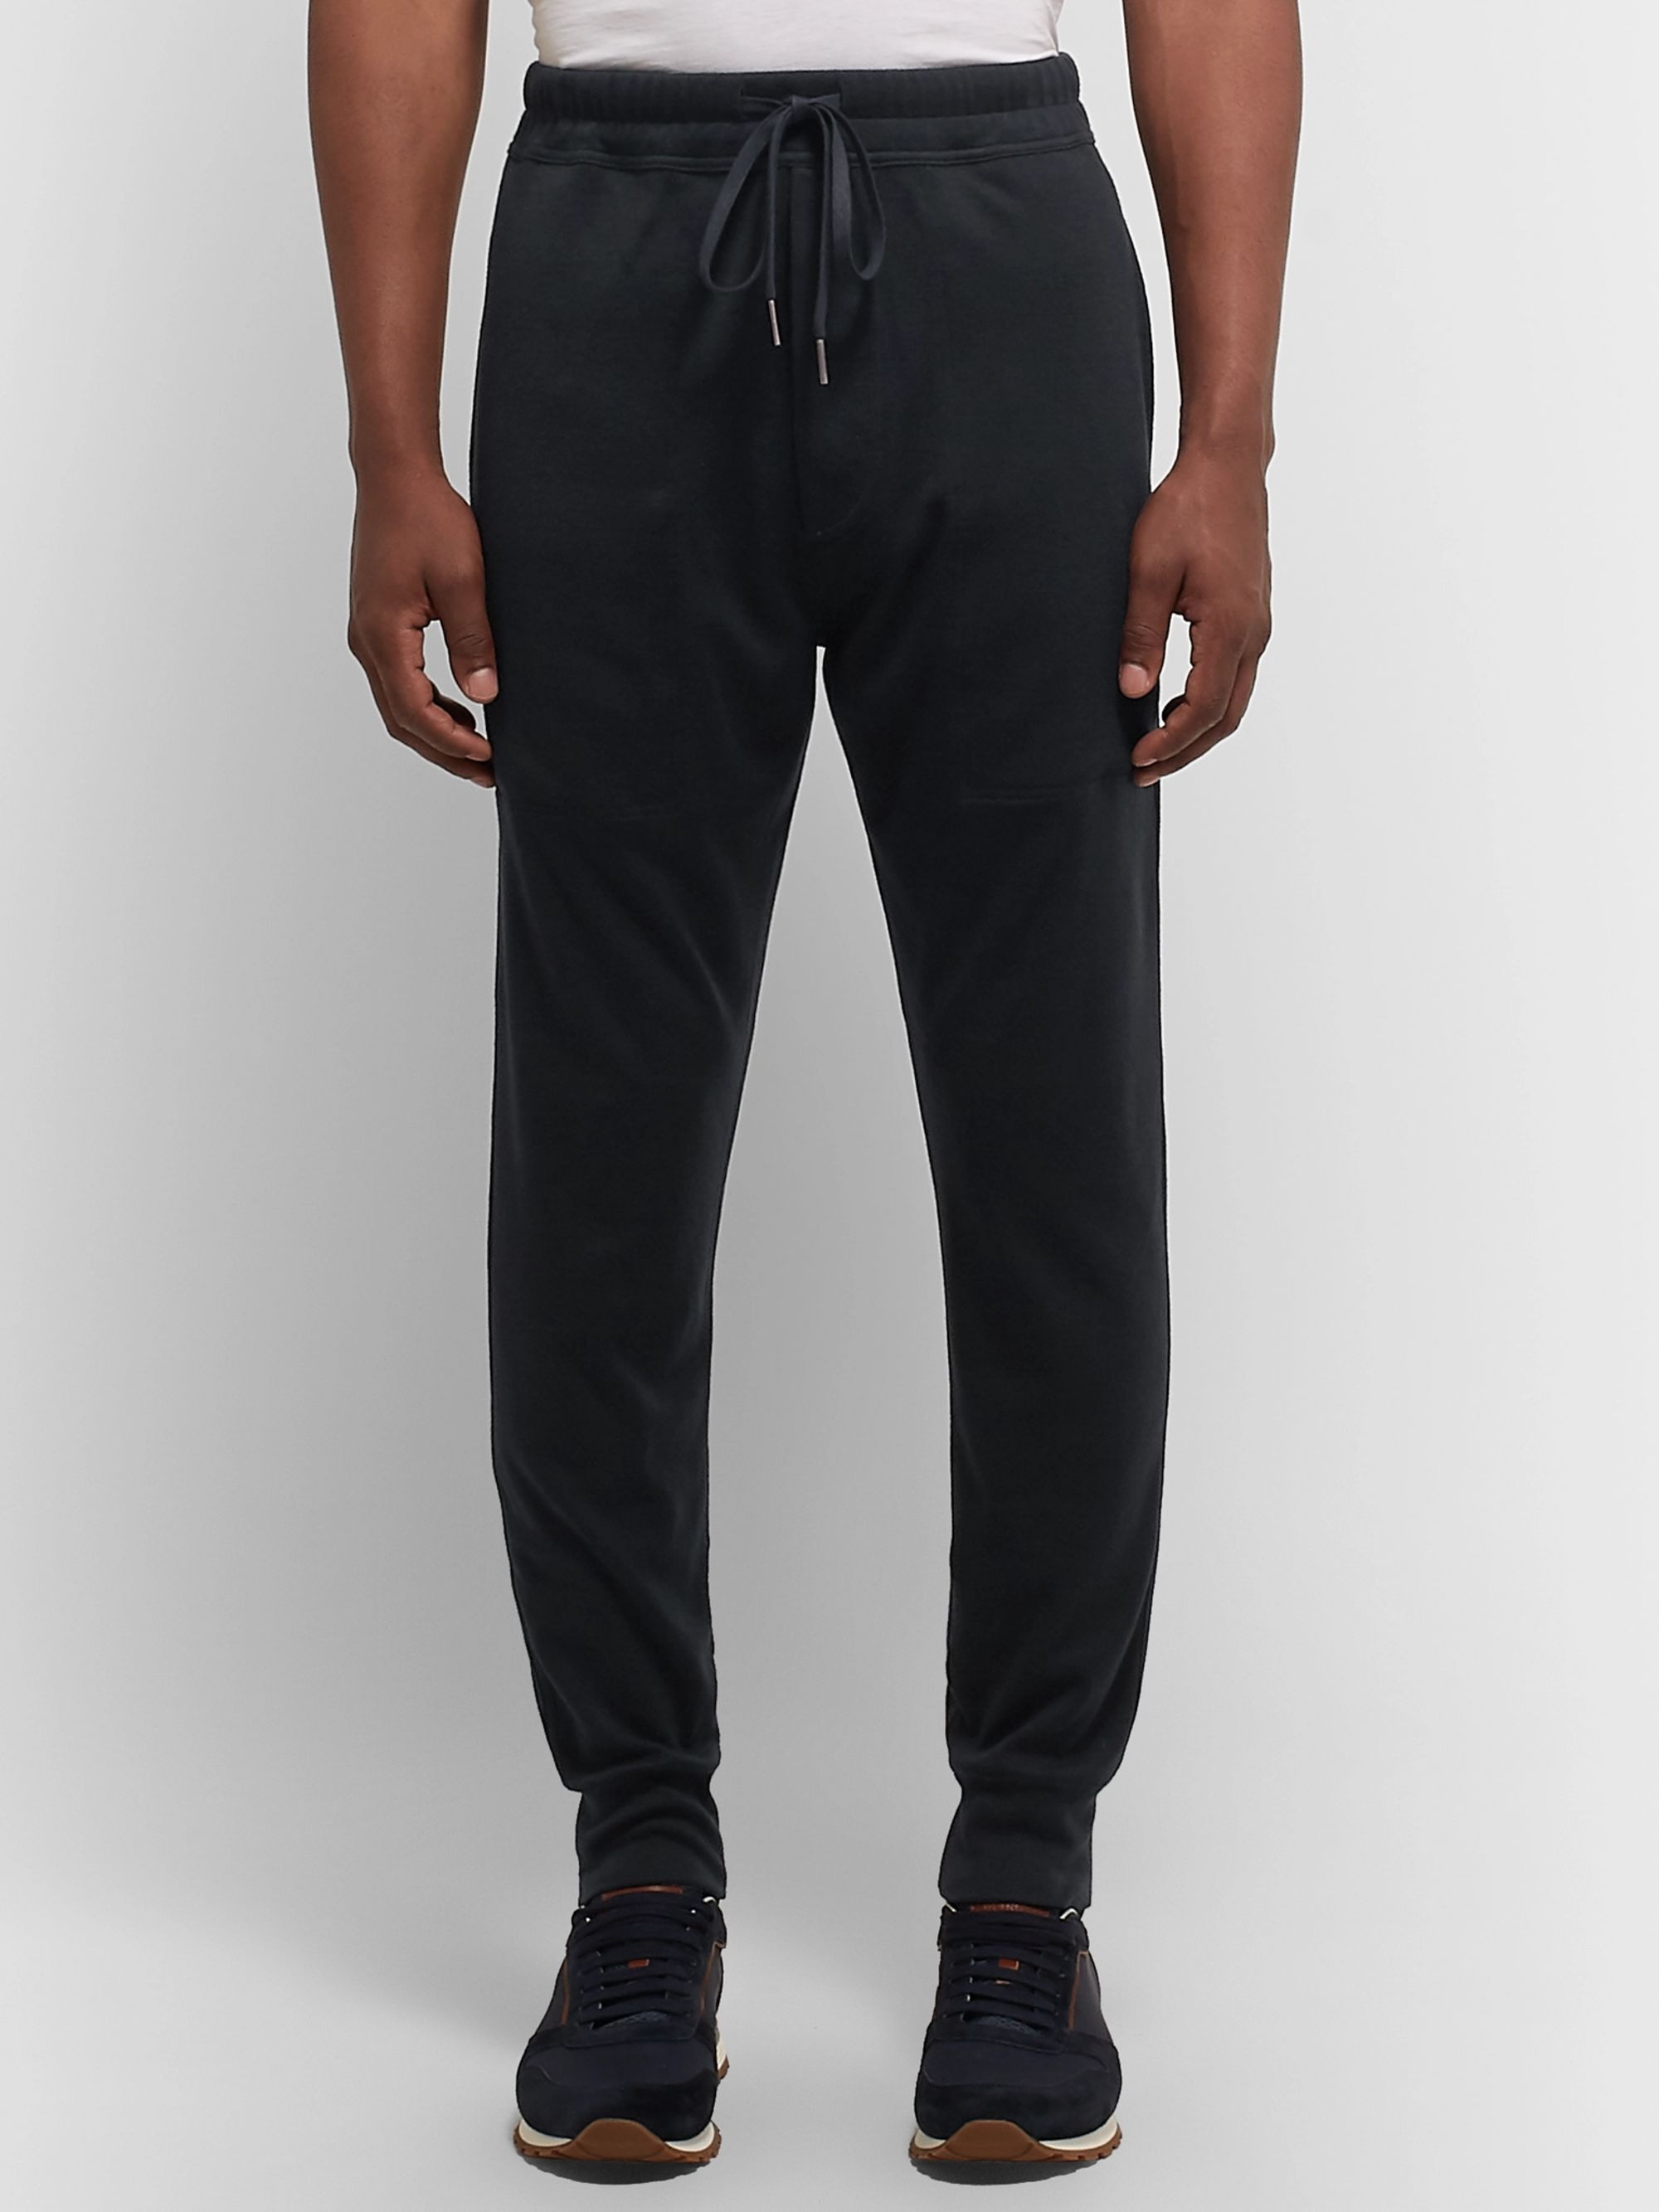 TOM FORD Tapered Cashmere Sweatpants